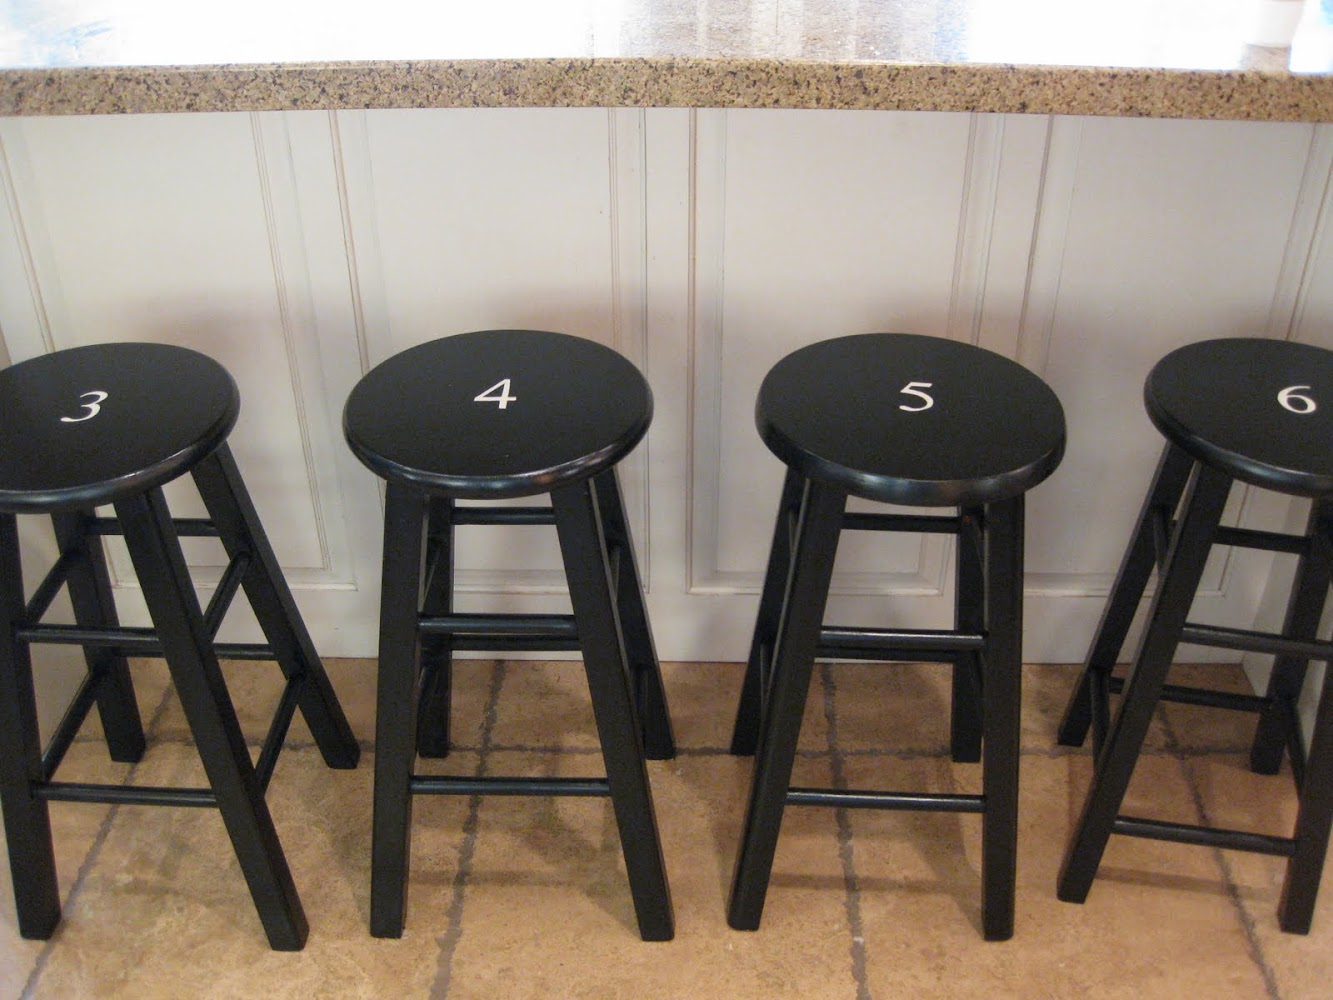 Numbered Barstools